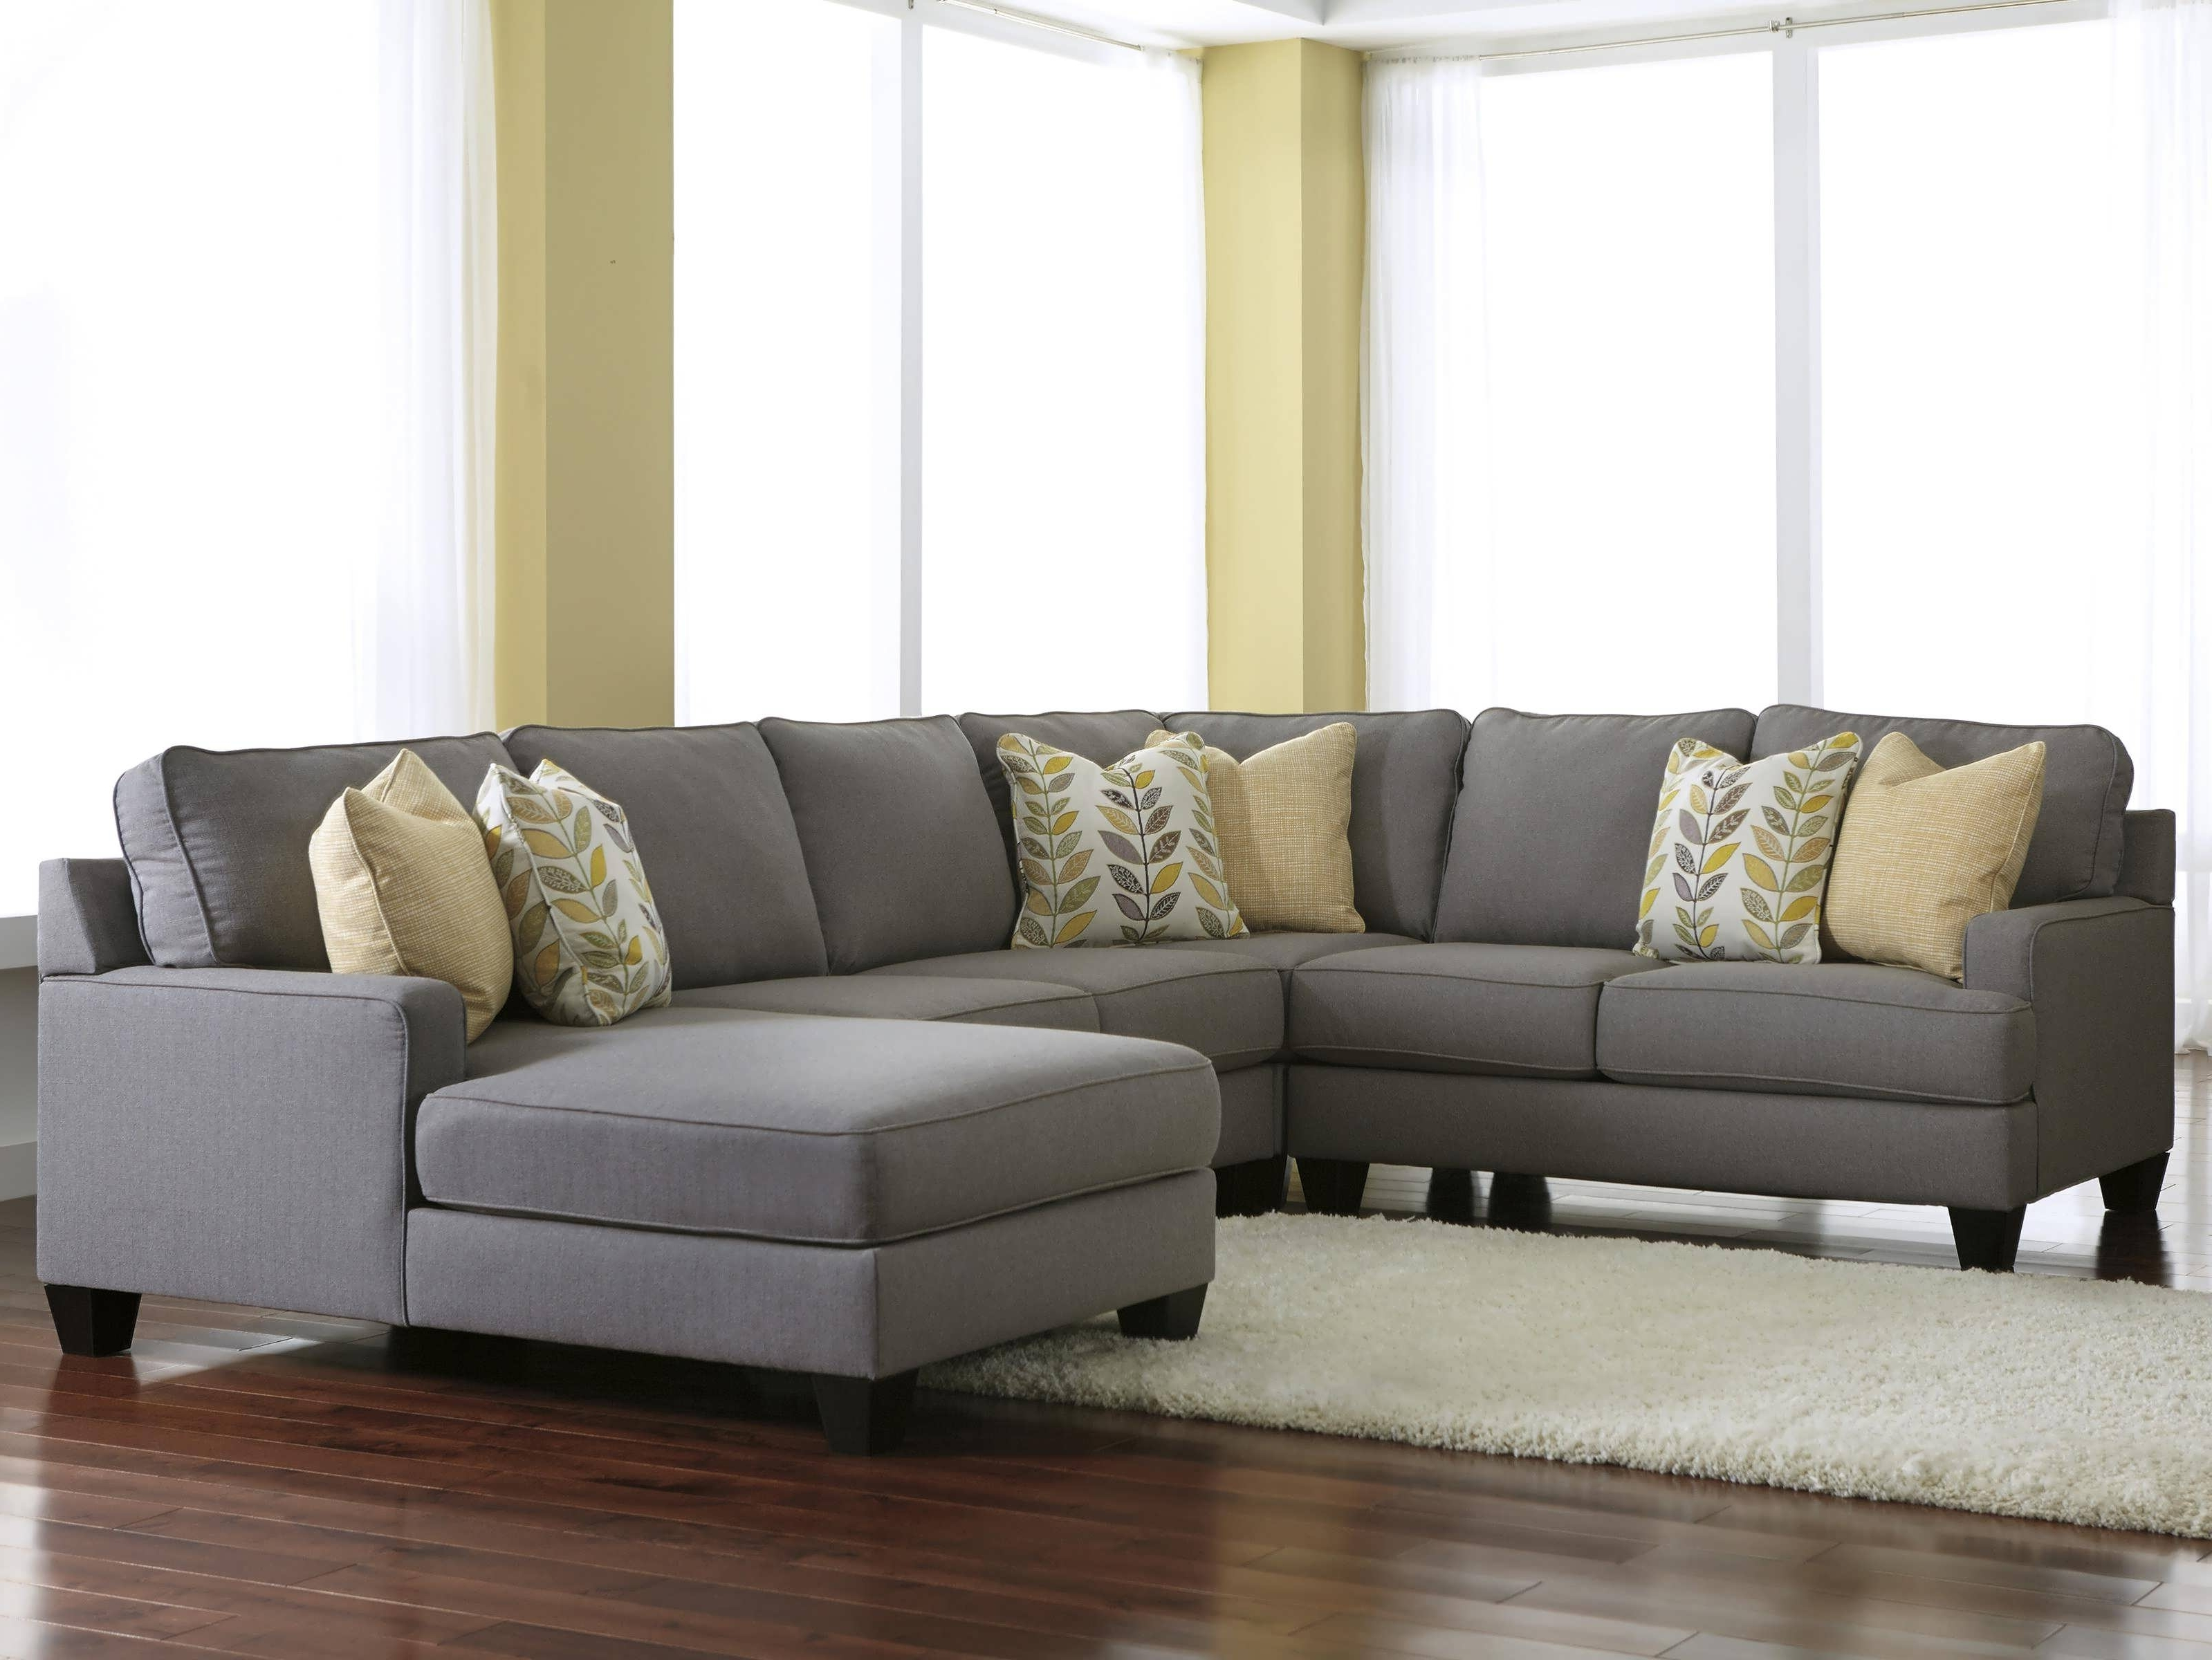 Grey Sectionals With Chaise Inside Latest Sofa : Sectional With Chaise Oversized Sectionals Grey L Sofa (View 7 of 15)